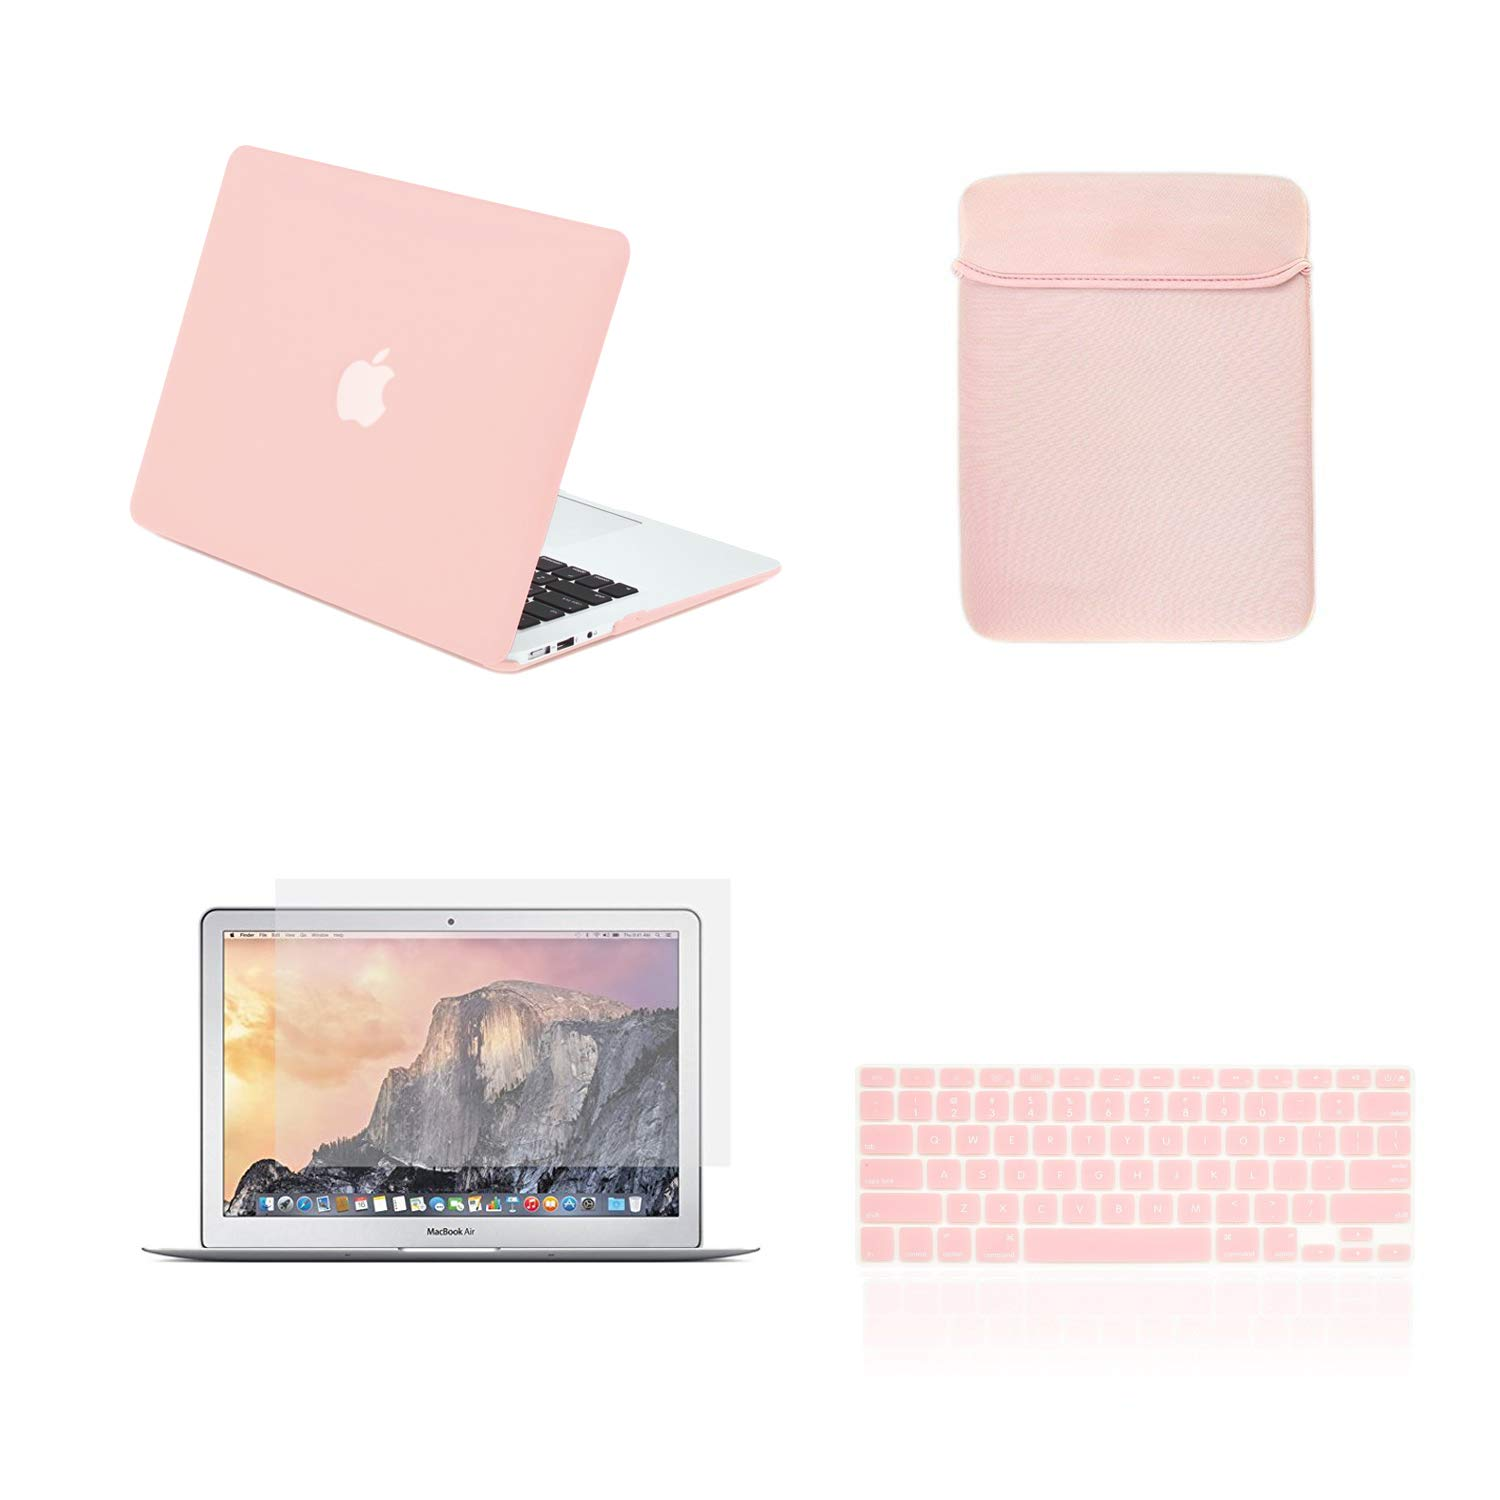 TOP CASE - 4 in 1 Bundle Hard Case, Keyboard Cover, Sleeve Bag, Screen Protector Compatible with Apple MacBook Air 13'' A1369 & A1466 - Rose Quartz